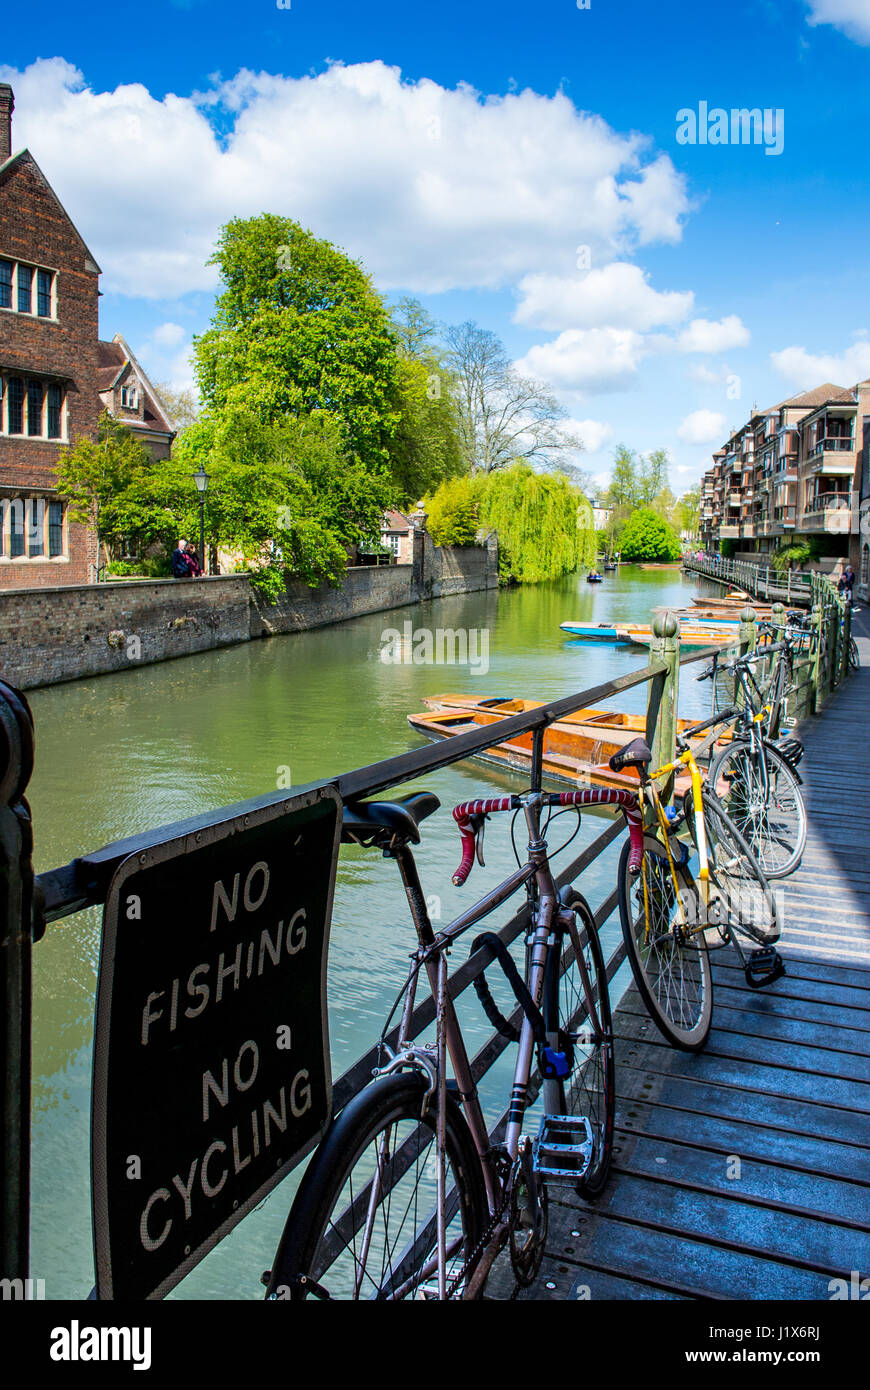 River punting in Cambridge Cambridgeshire England UK - Stock Image